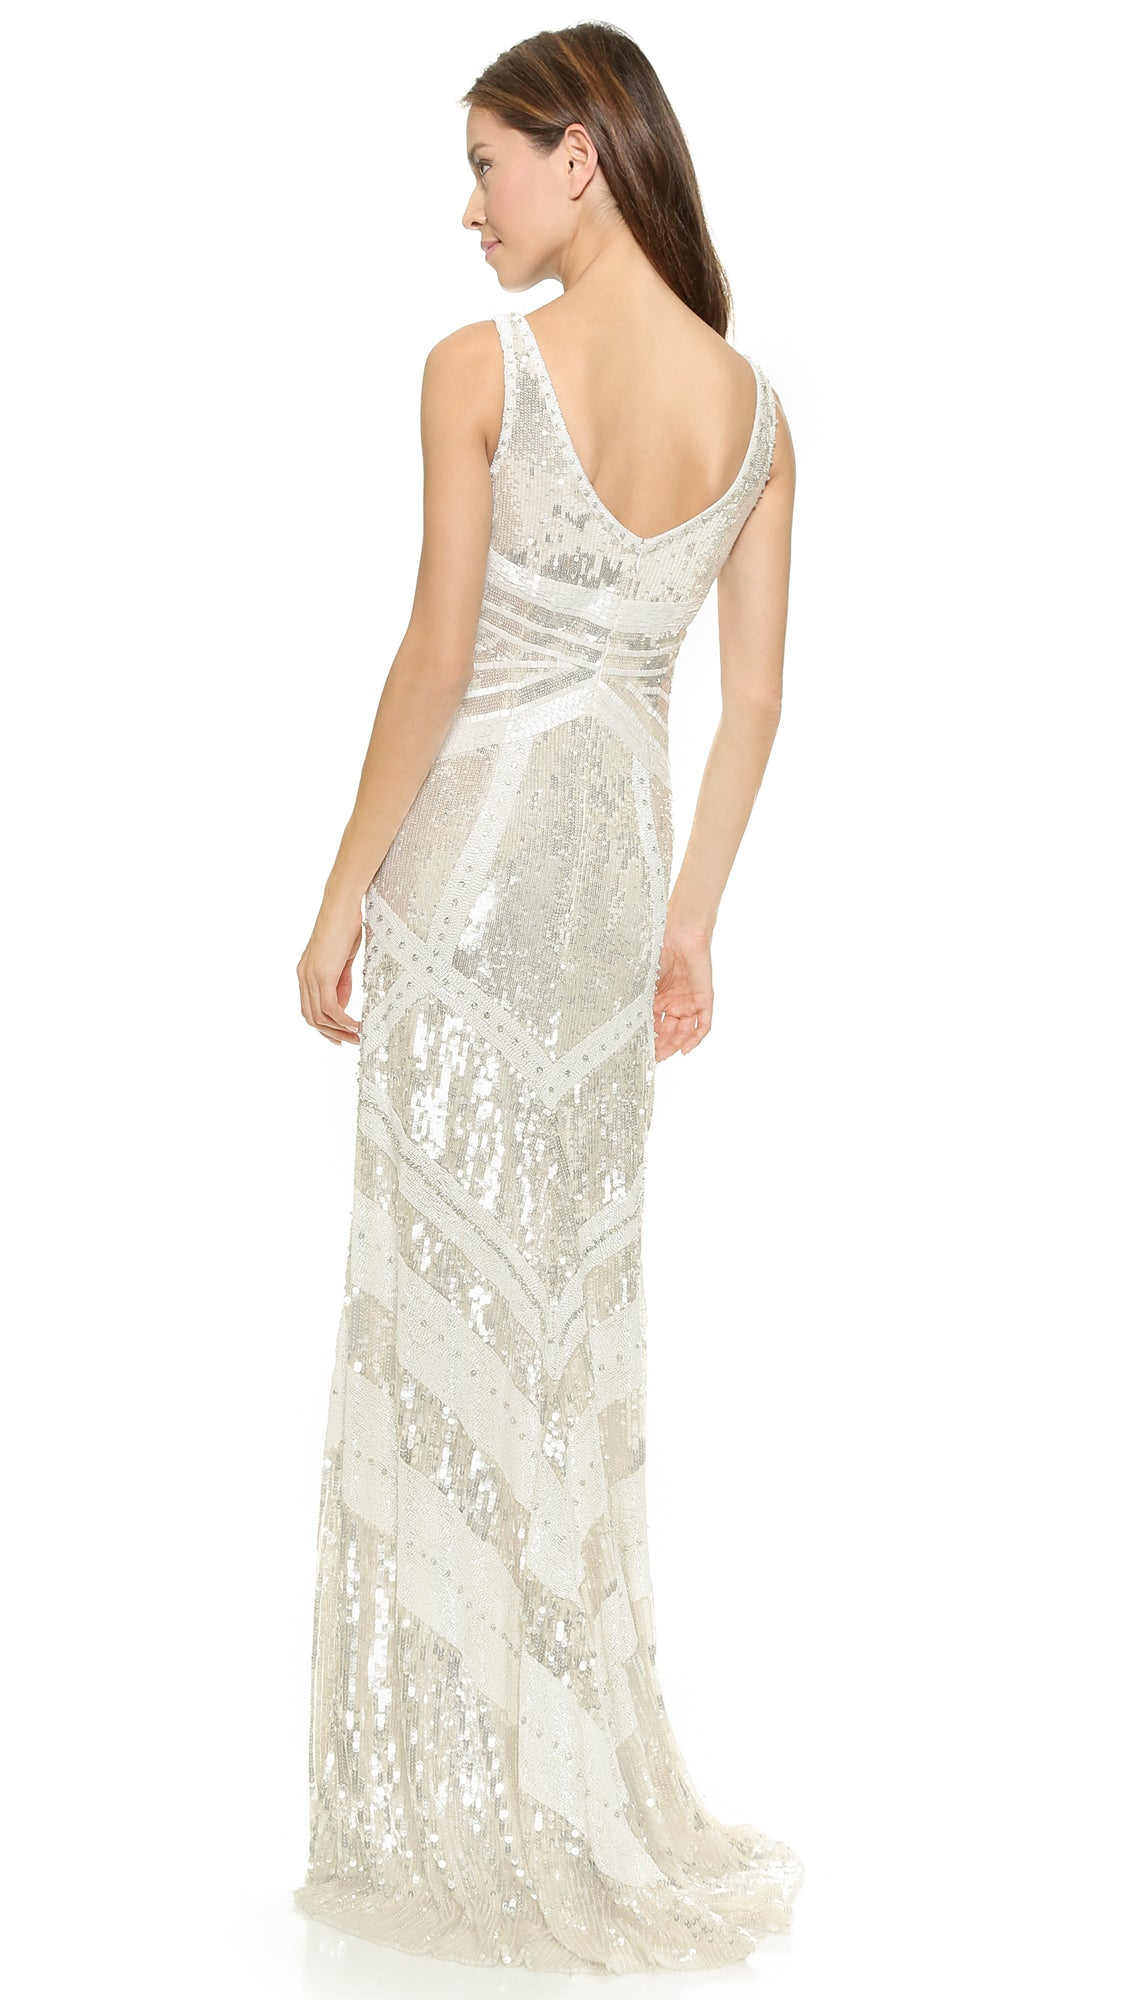 Theia Selene 890140 Sequin Wedding Gown - Adinas Bridal